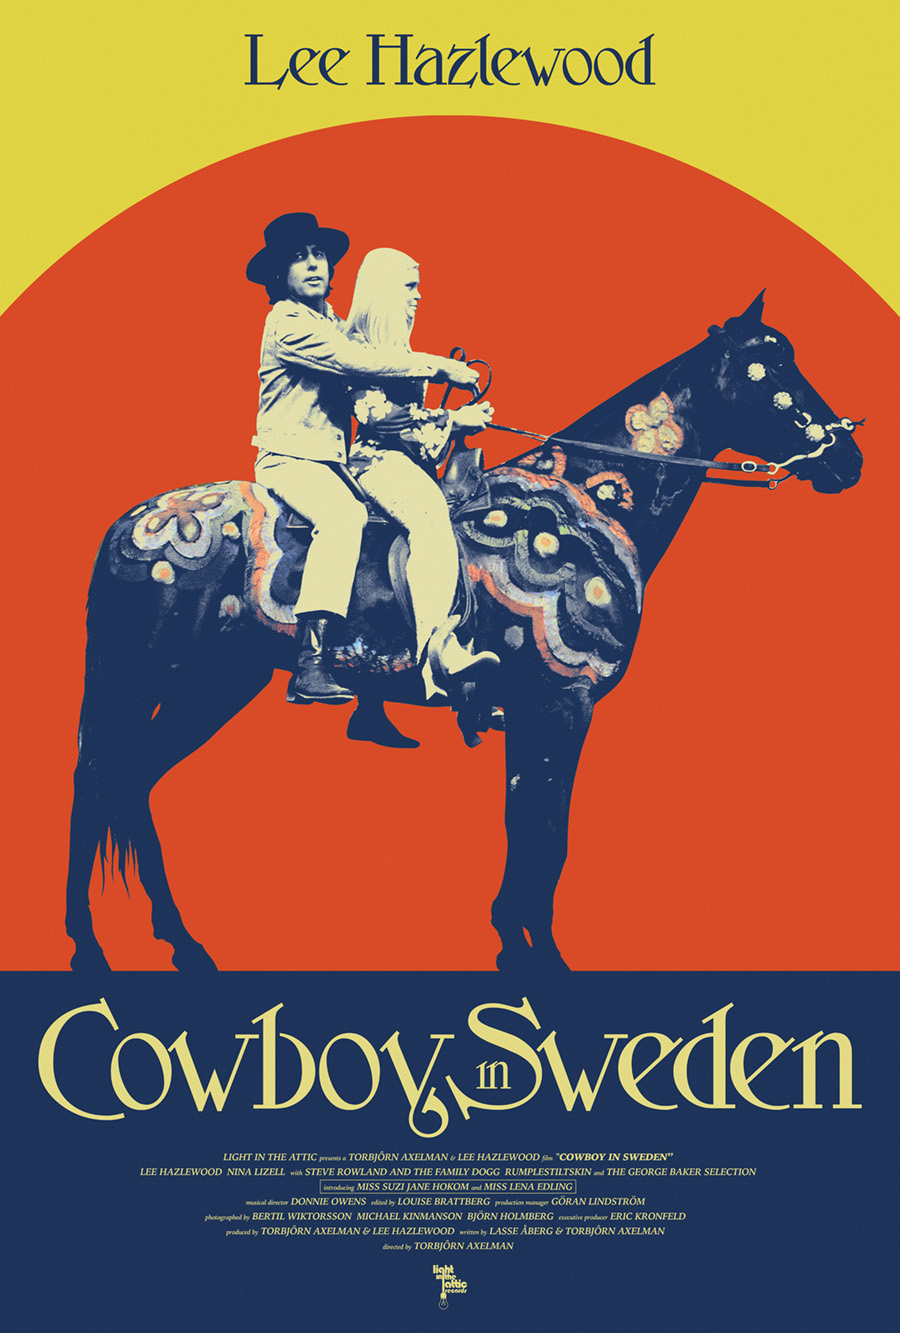 Cowboy In Sweden Poster Light In The Attic Records